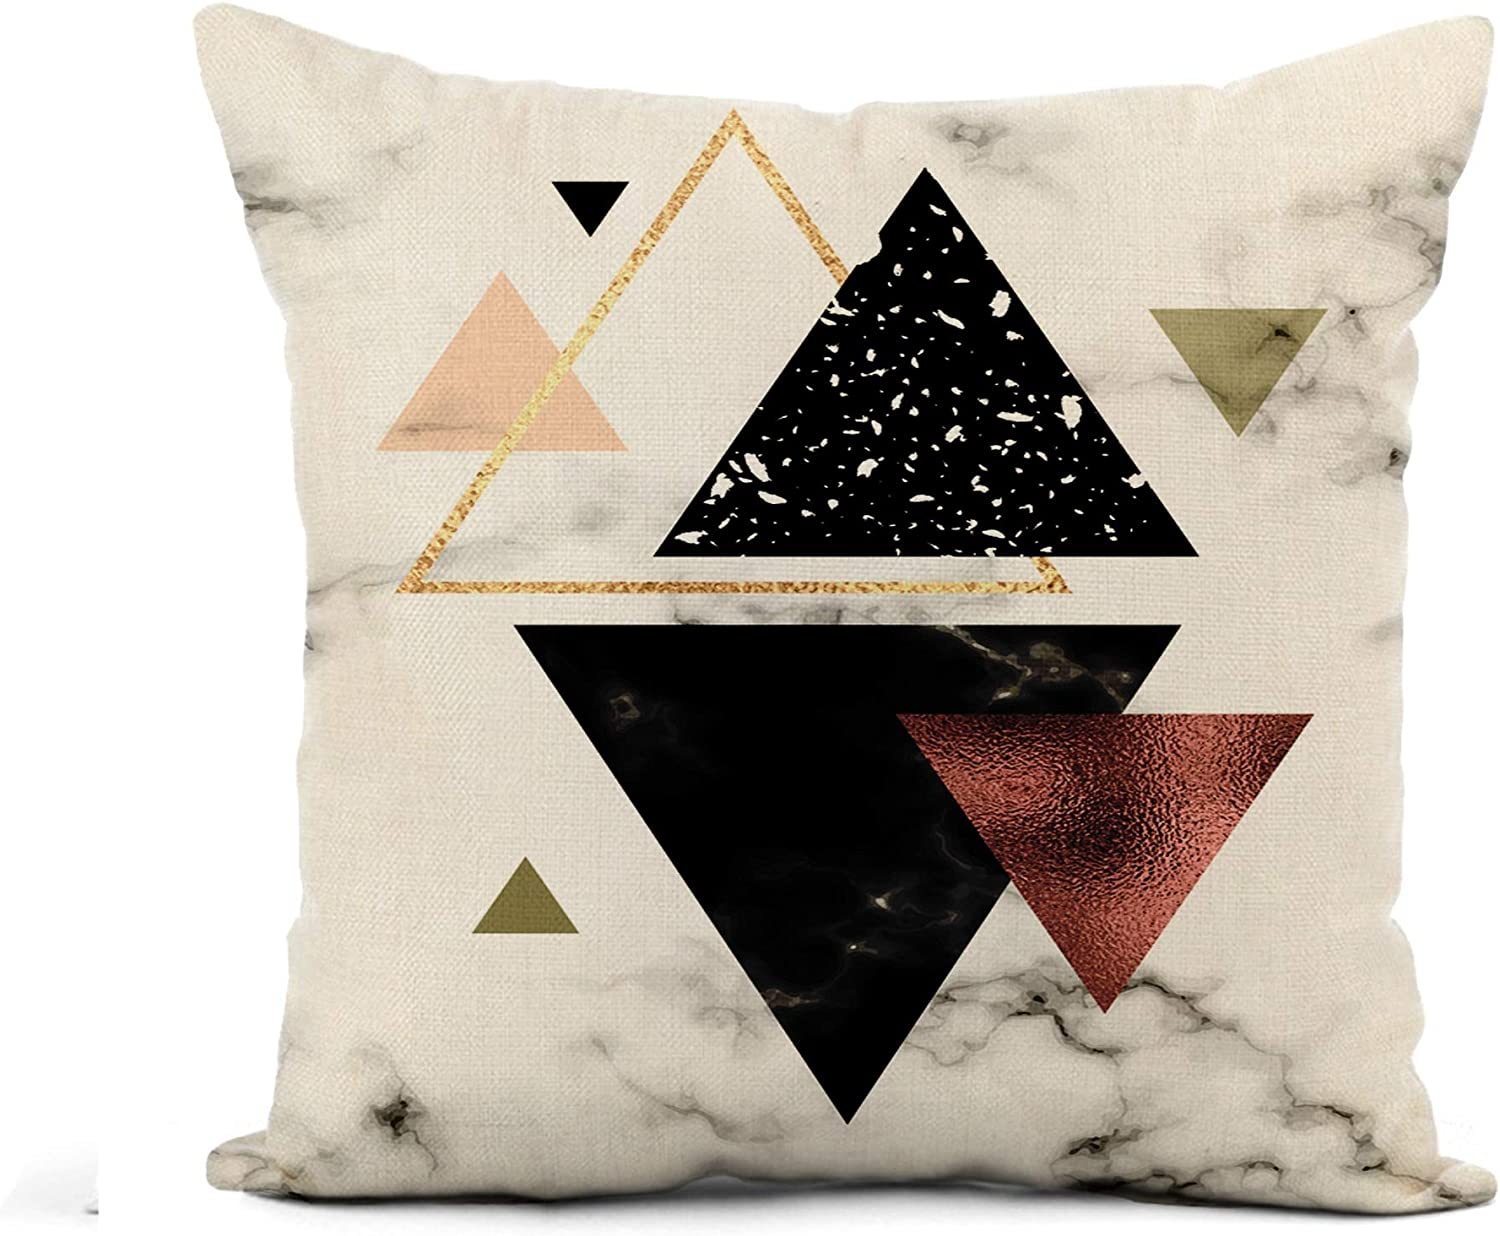 Awowee Flax Throw Pillow Cover Shape Marble Geometric Gold Rose and Triangles Elegant Pattern 16x16 Inches Pillowcase Home Decor Square Cotton Linen Pillow Case Cushion Cover